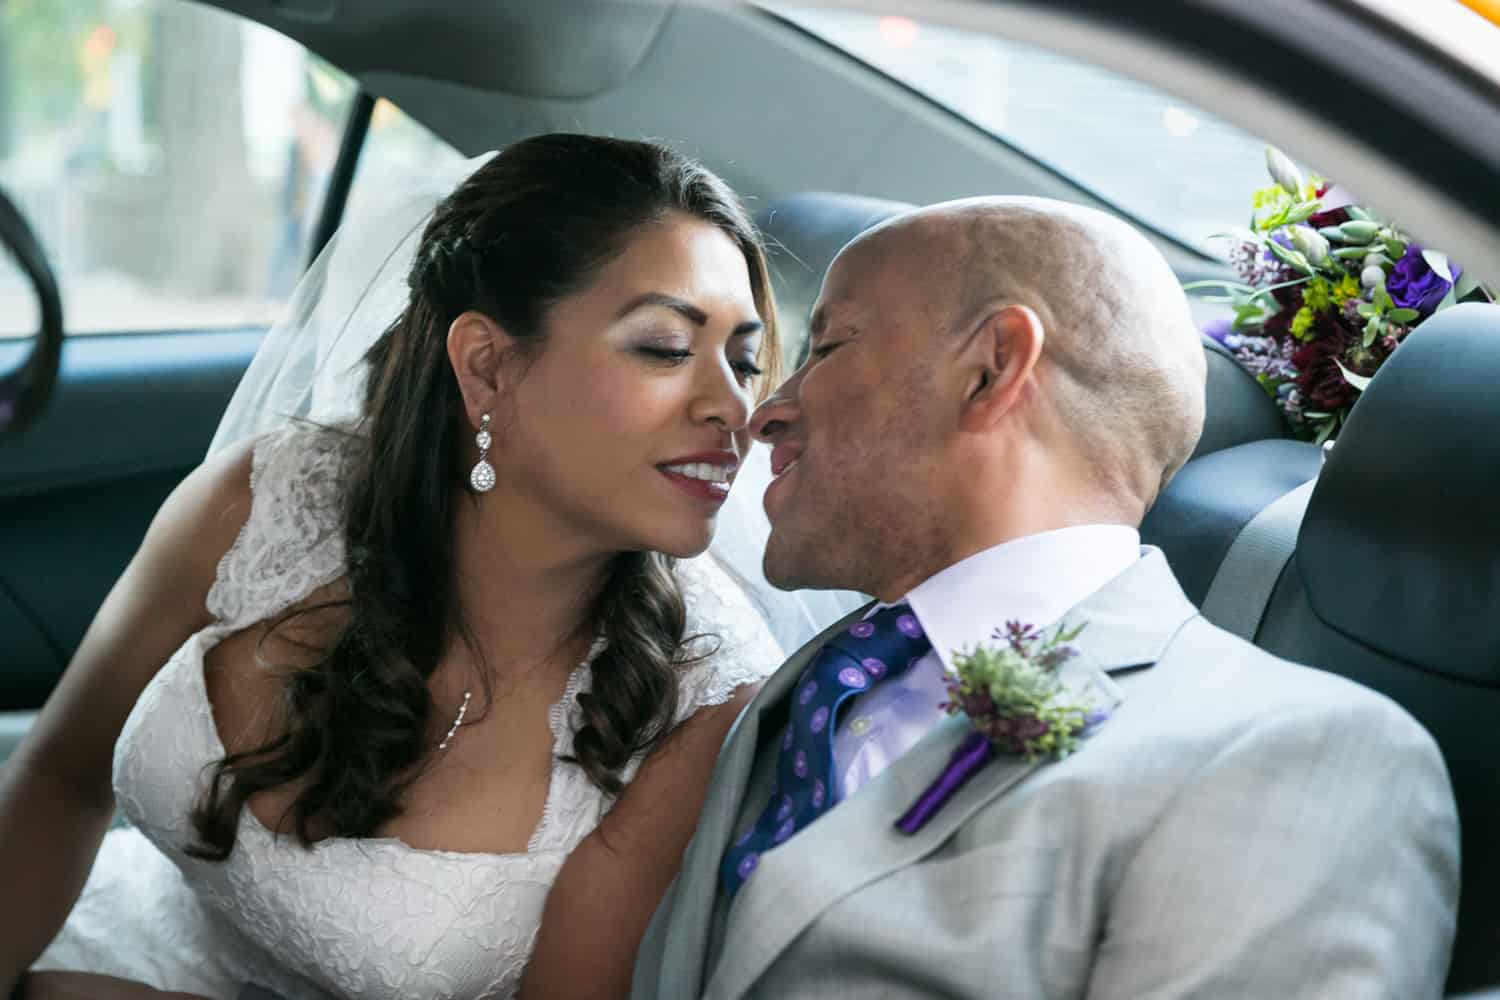 Bride and groom about to kiss in the back of a taxi cab